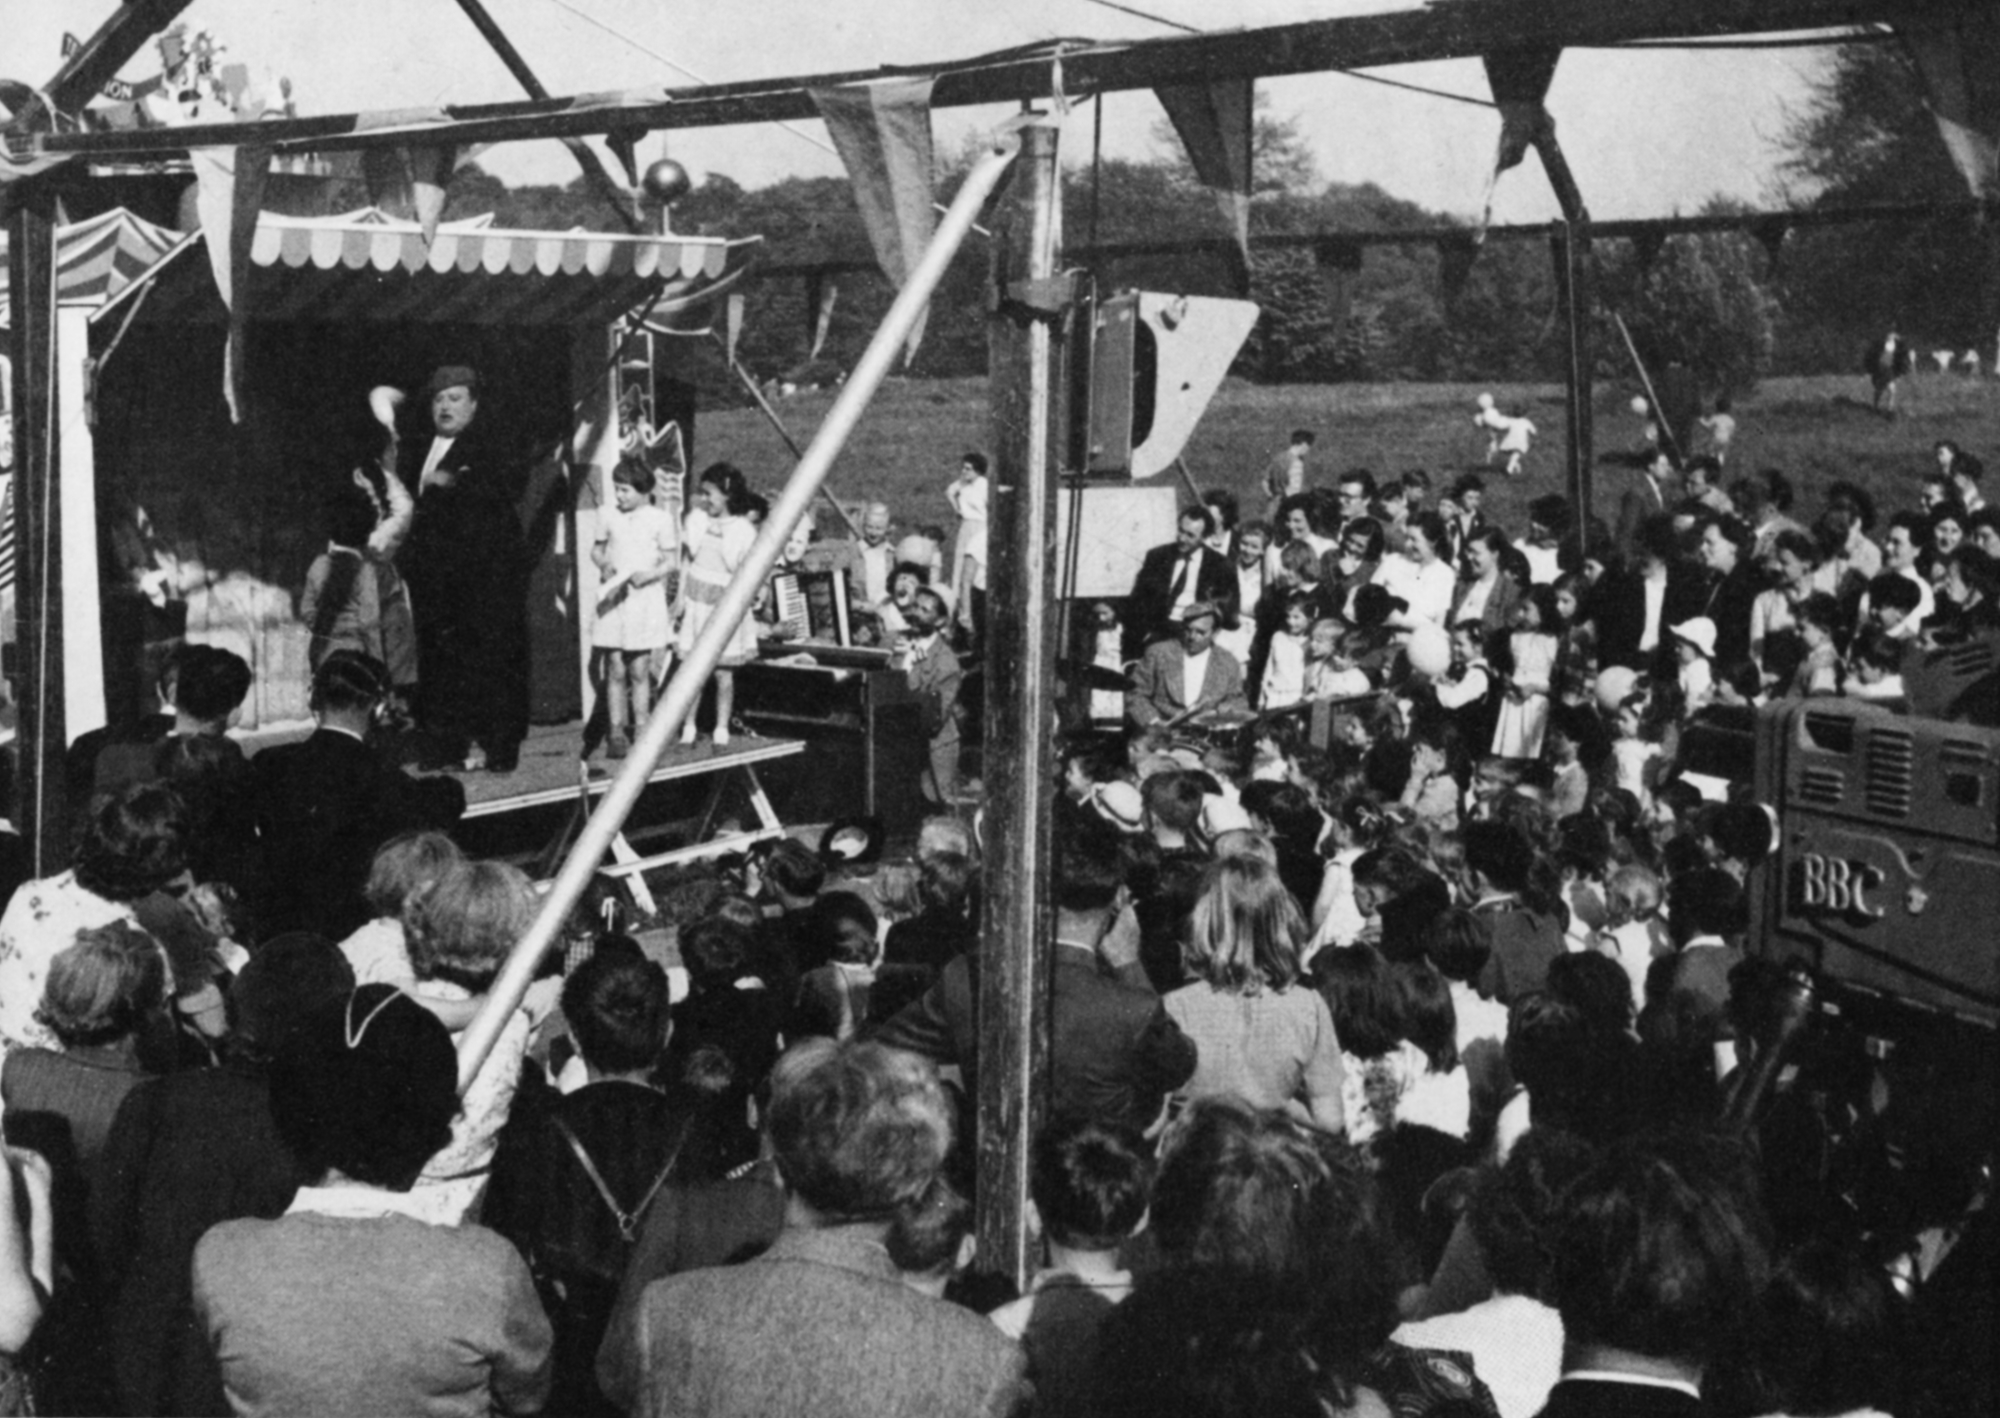 A crowd of children watch a magician on an outdoor stage